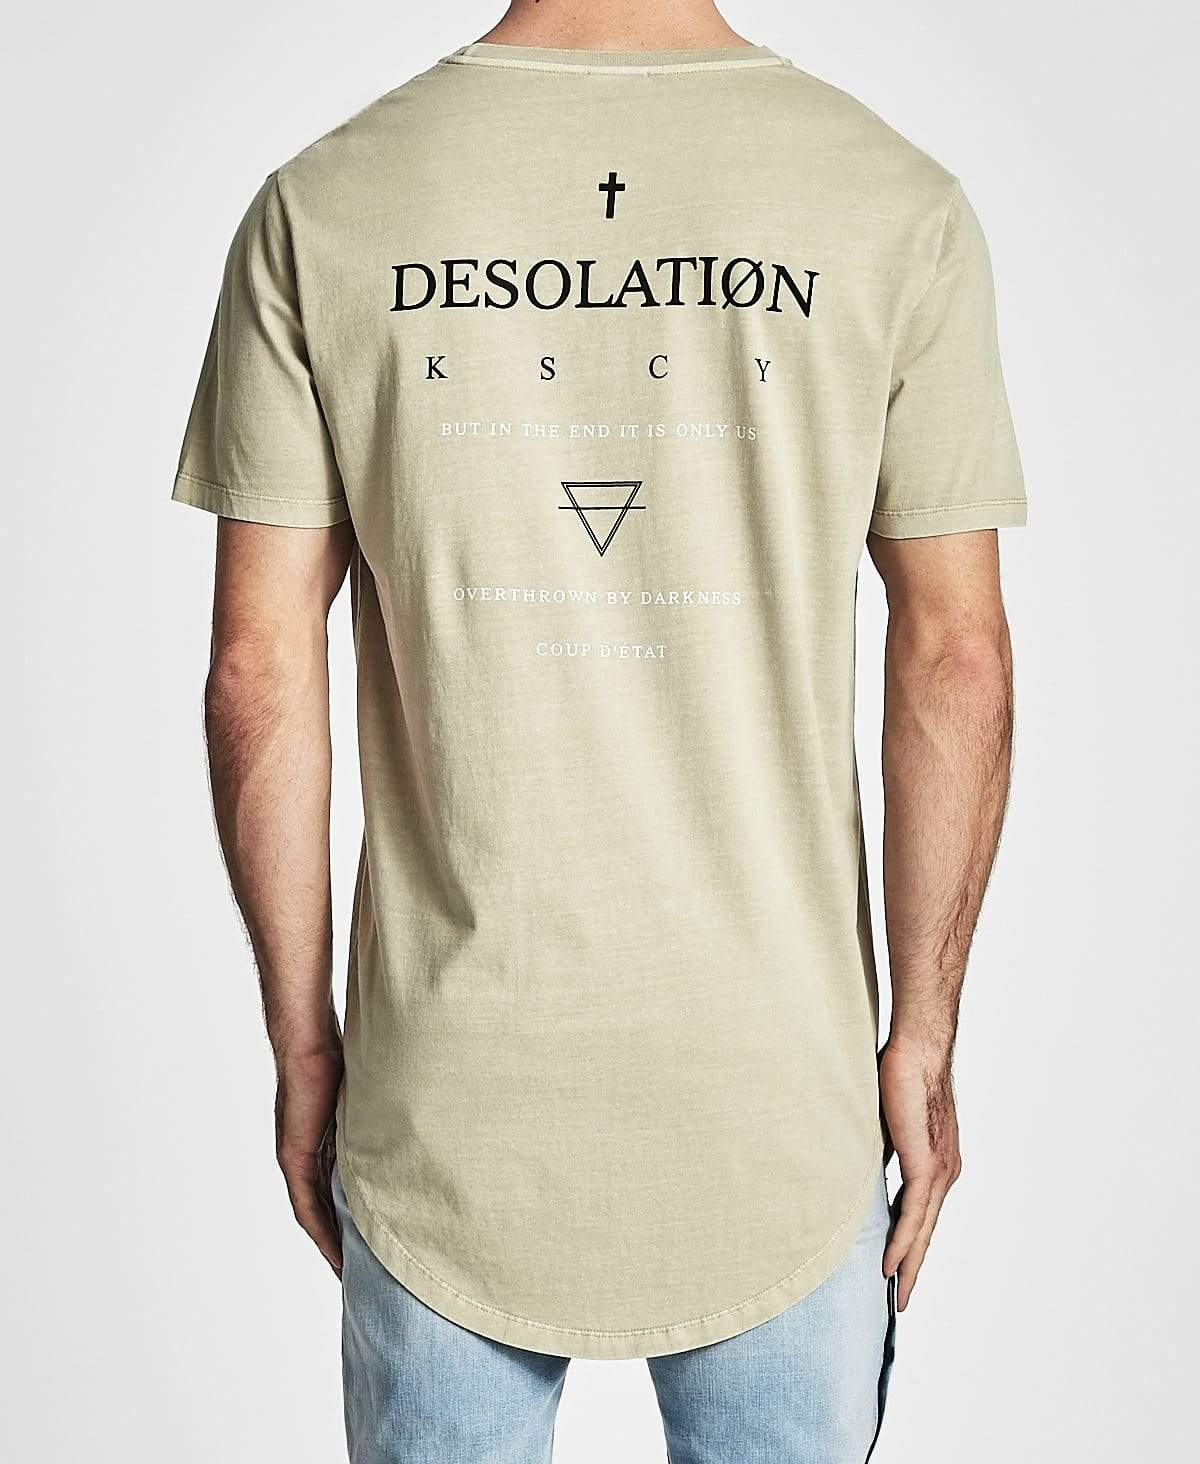 Kiss Chacey Desolation Dual Curved Hem T-Shirt Pigment Sand